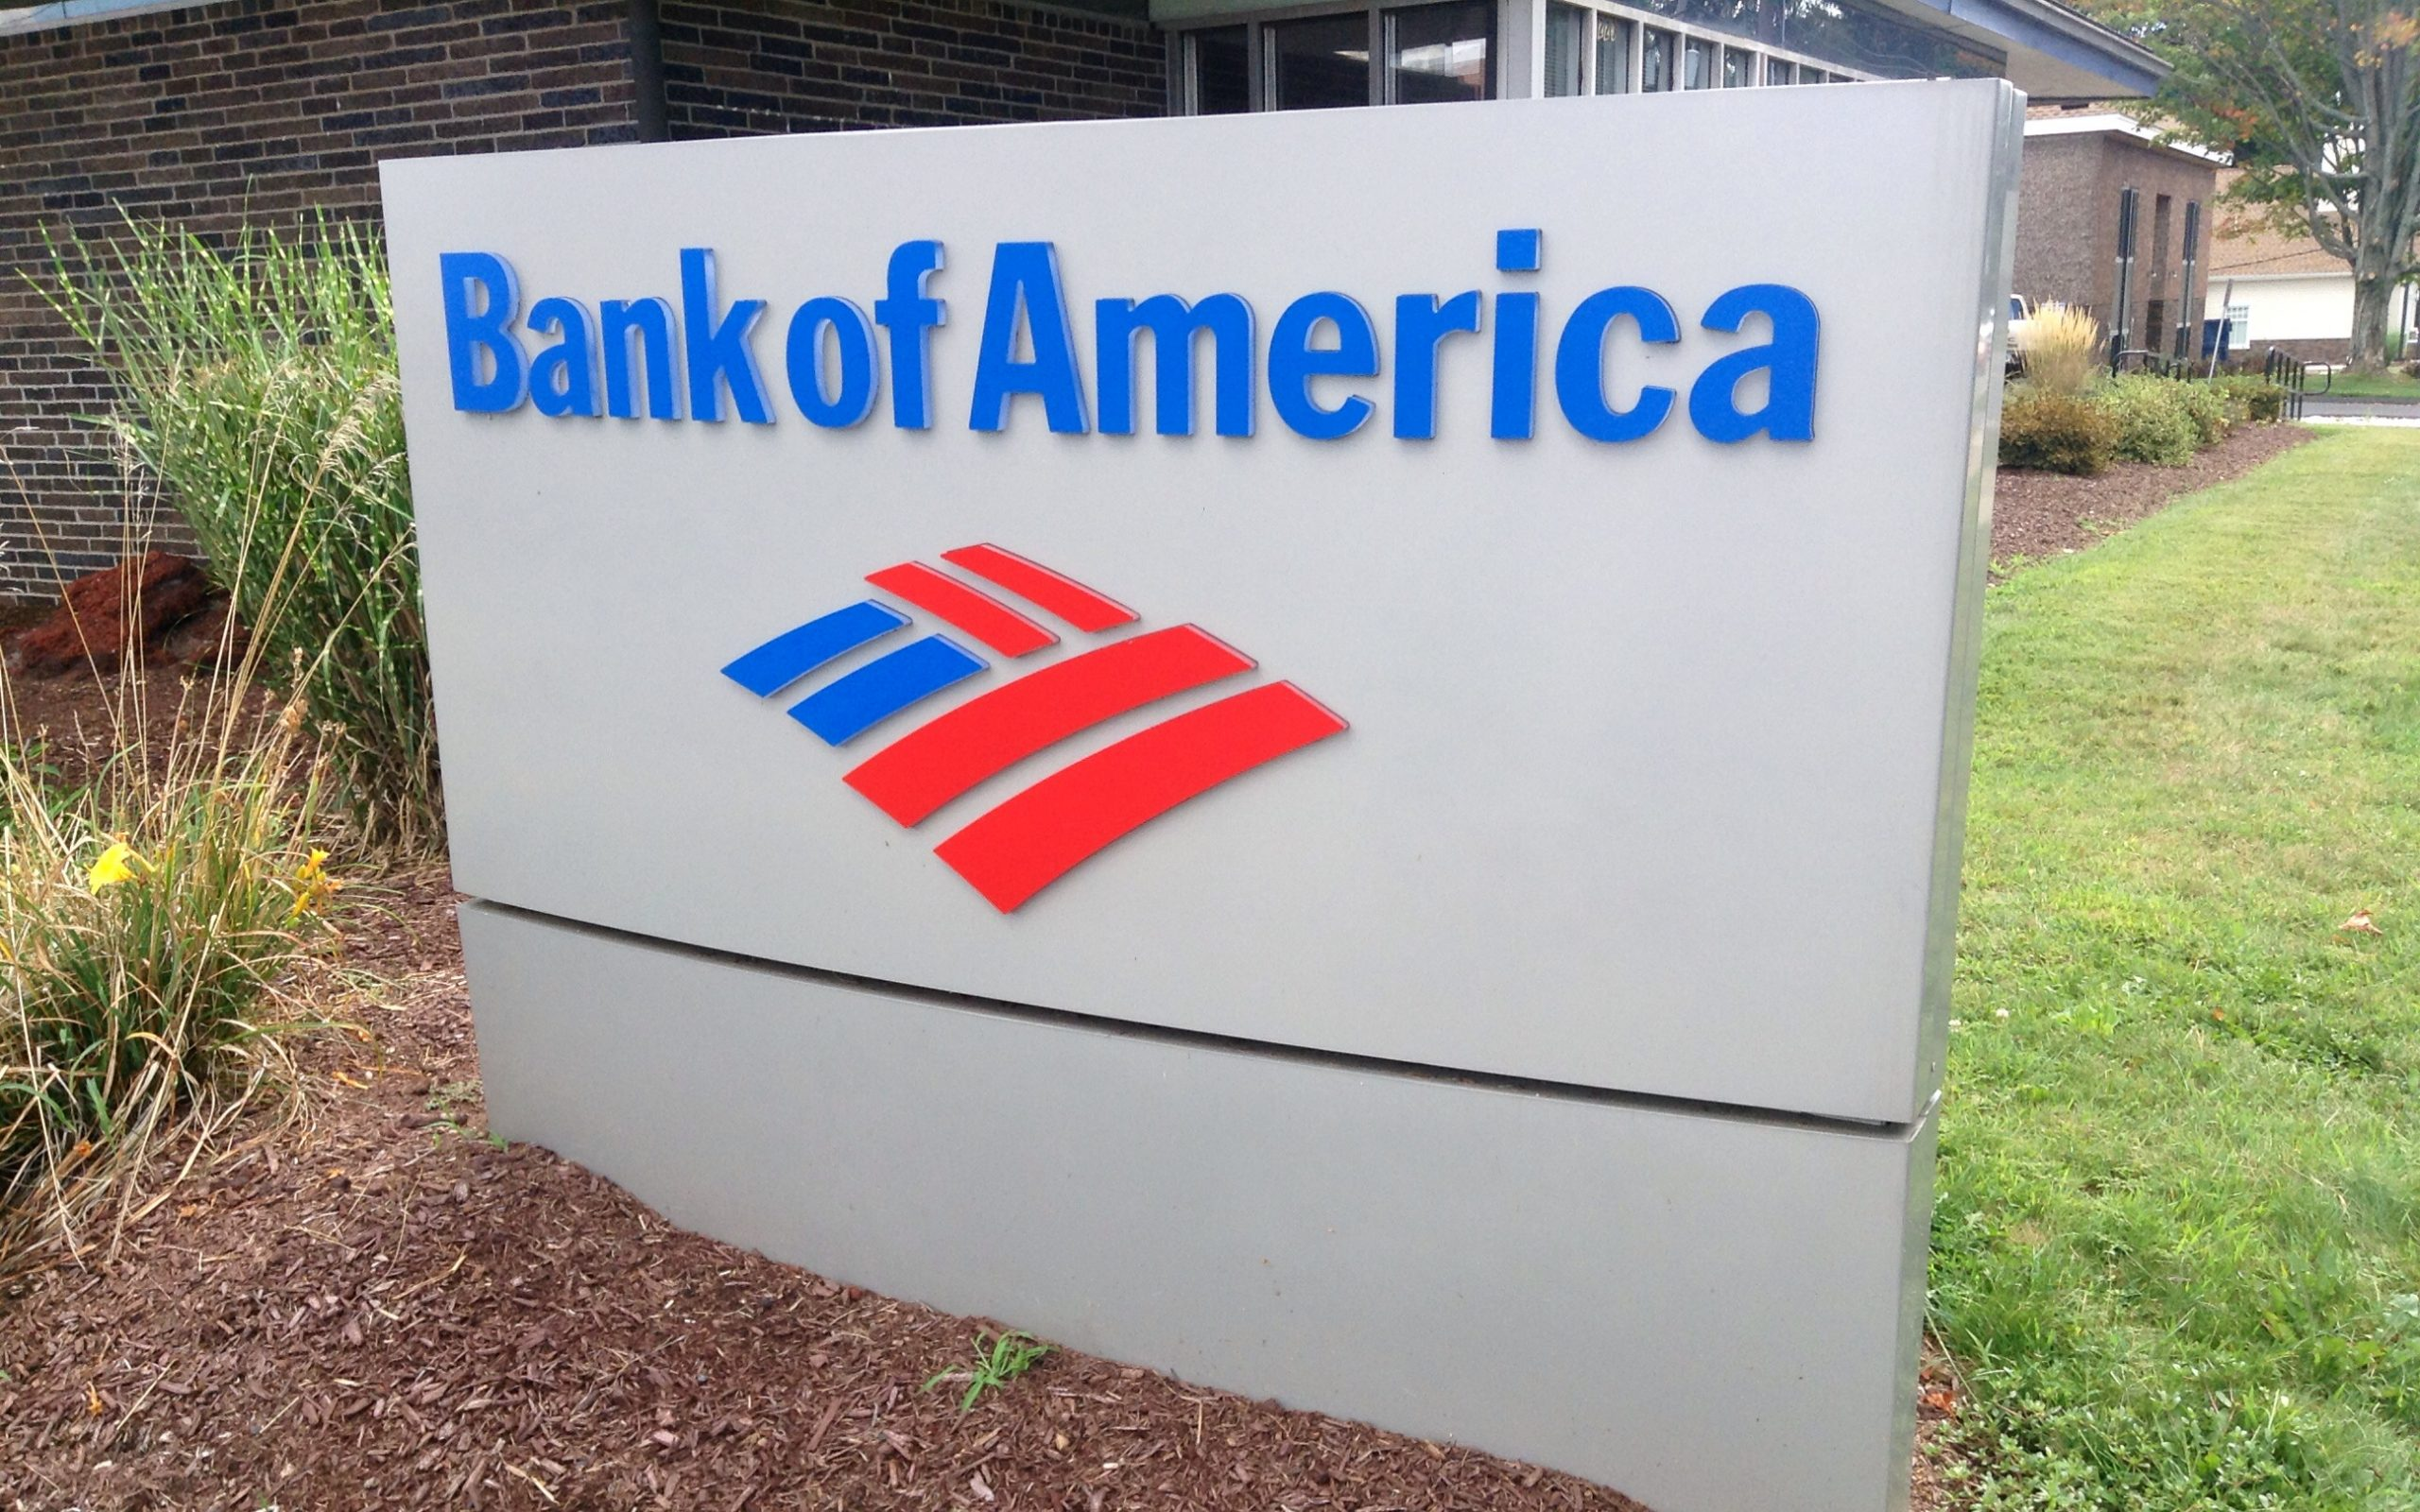 Banks Are More Dangerous than You Think, Report Says